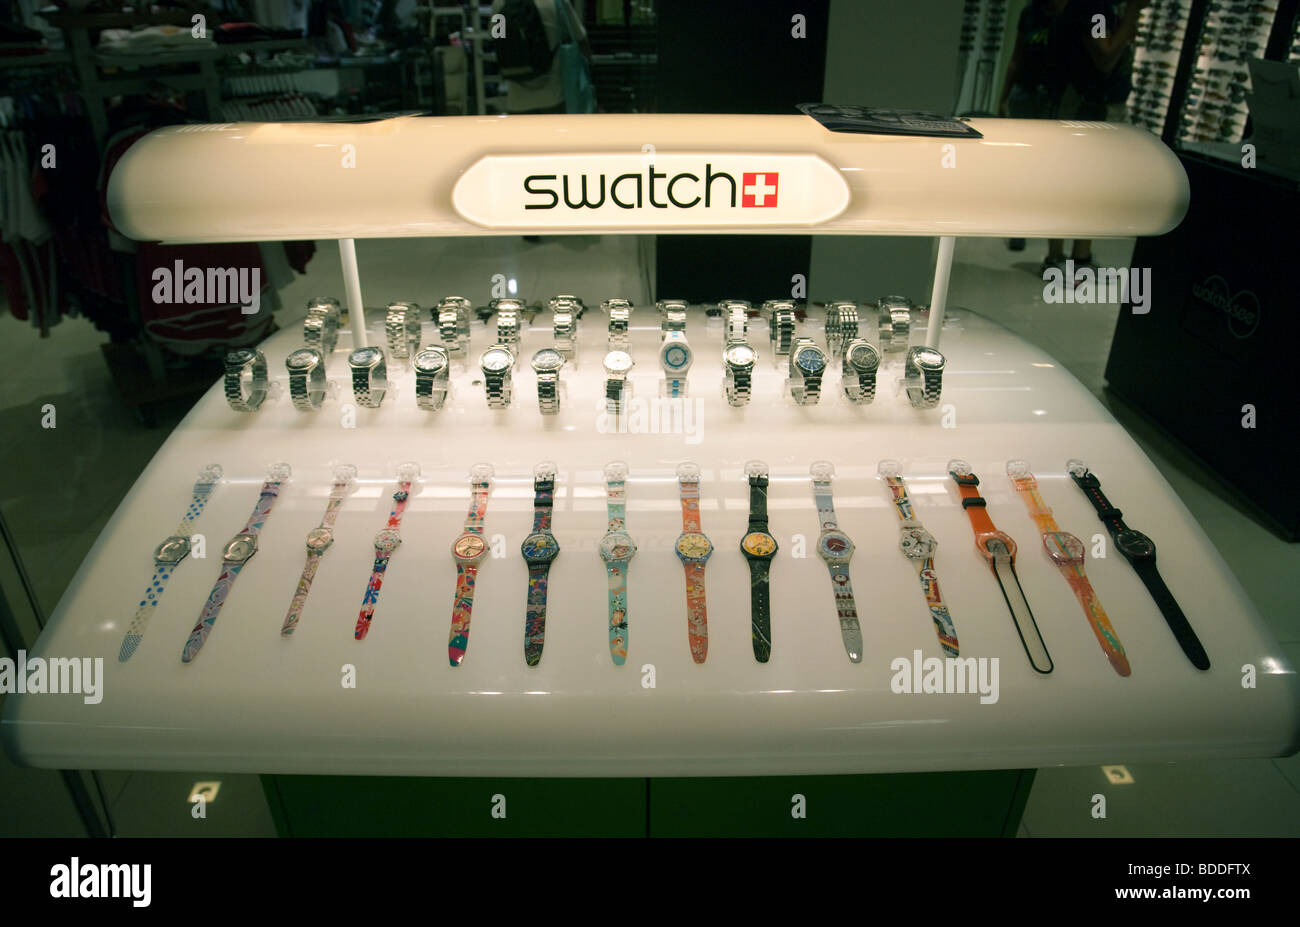 A display case of Swatch watches for sale - Stock Image